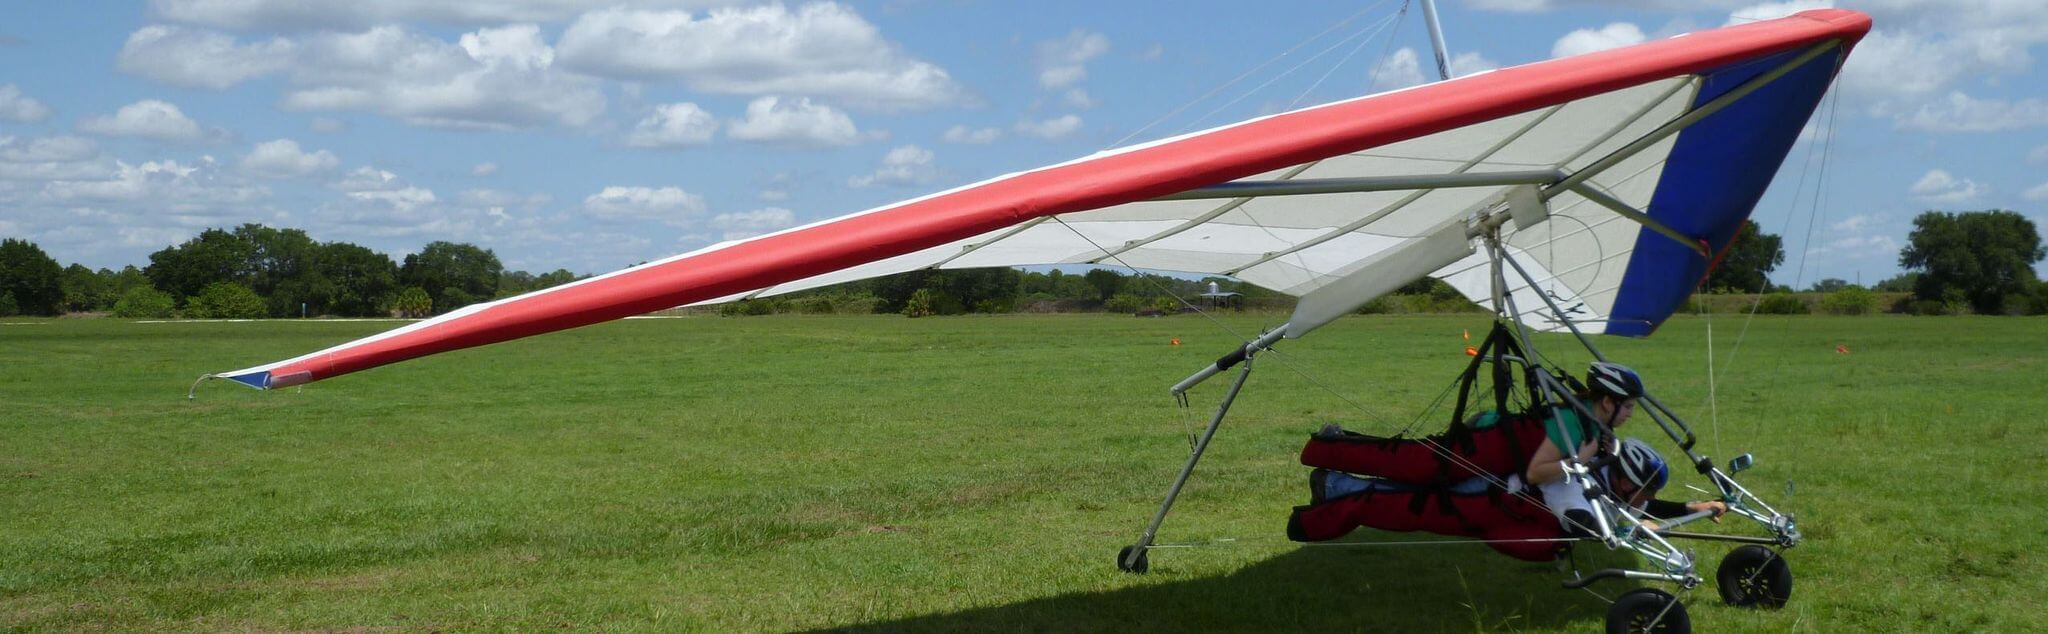 Hang Gliding in Guadalajara